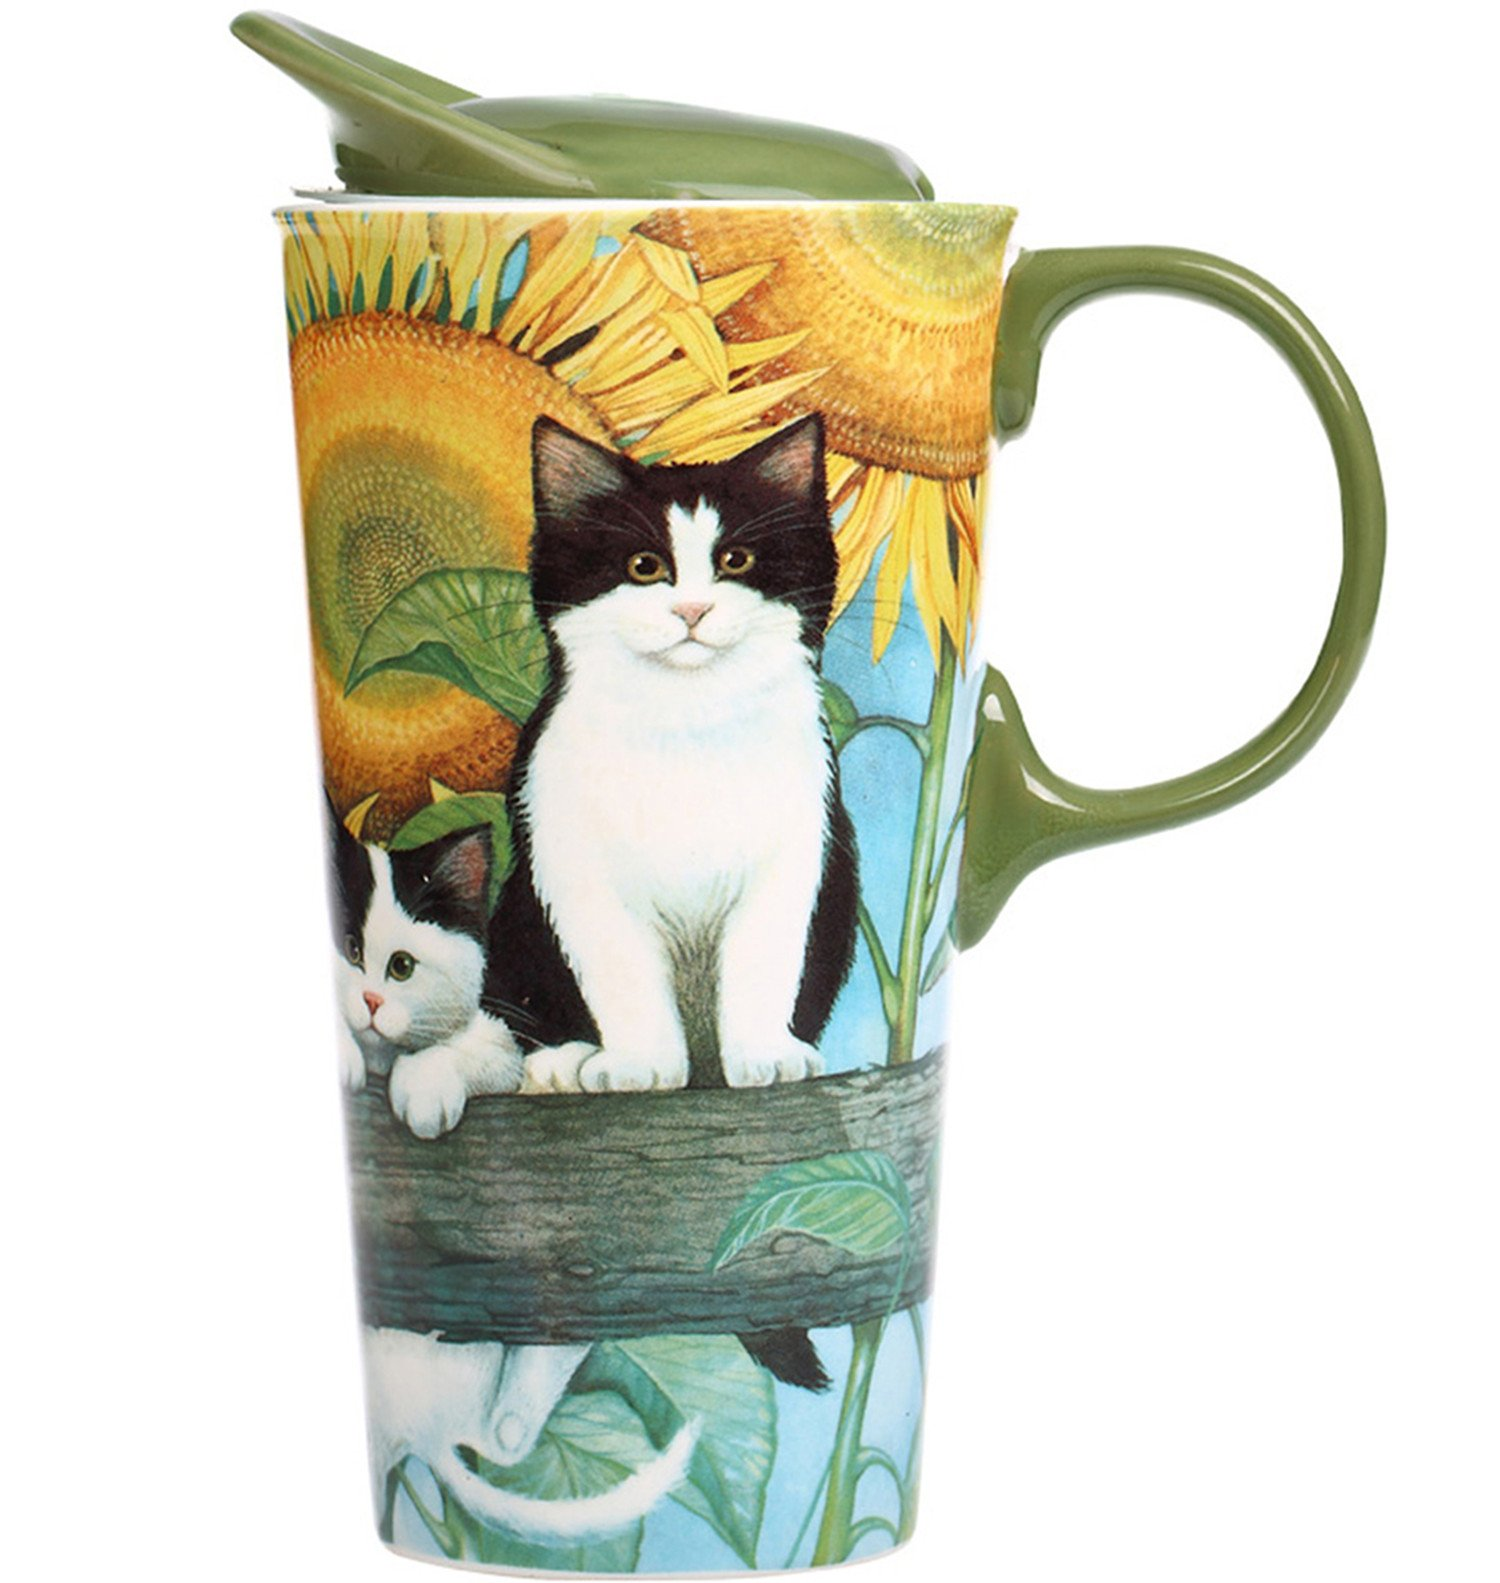 CEDAR HOME Travel Coffee Ceramic Mug Porcelain Latte Tea Cup With Lid 17oz. Sunflower and Pet Cat